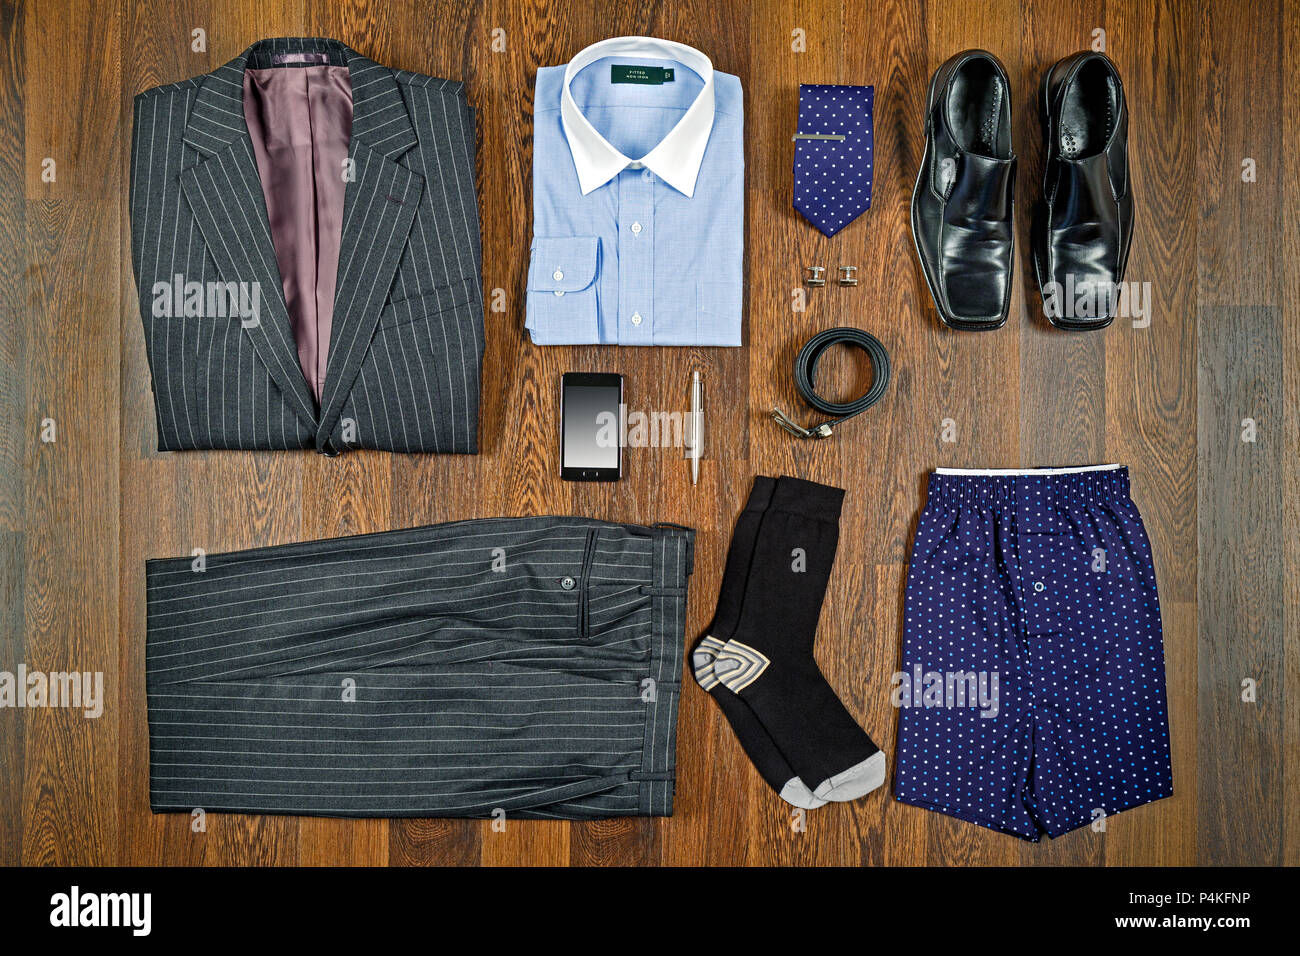 A Flat Lay Arrangement Of Mens Business Attire With Grey Pin Striped